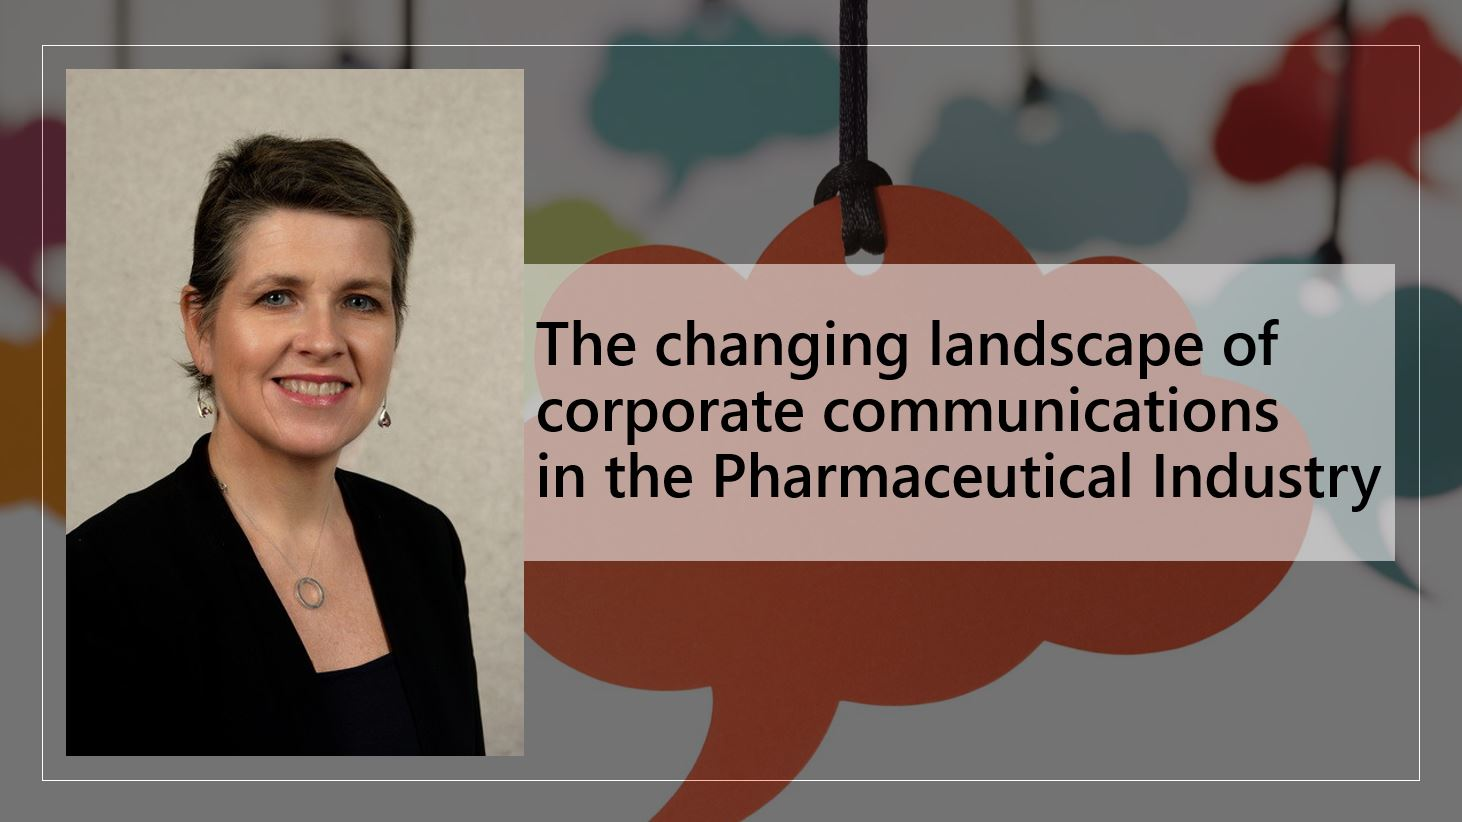 Communication Public Relations Pharma Biotech Medtech - The changing landscape of Pharma corporate communications - interview